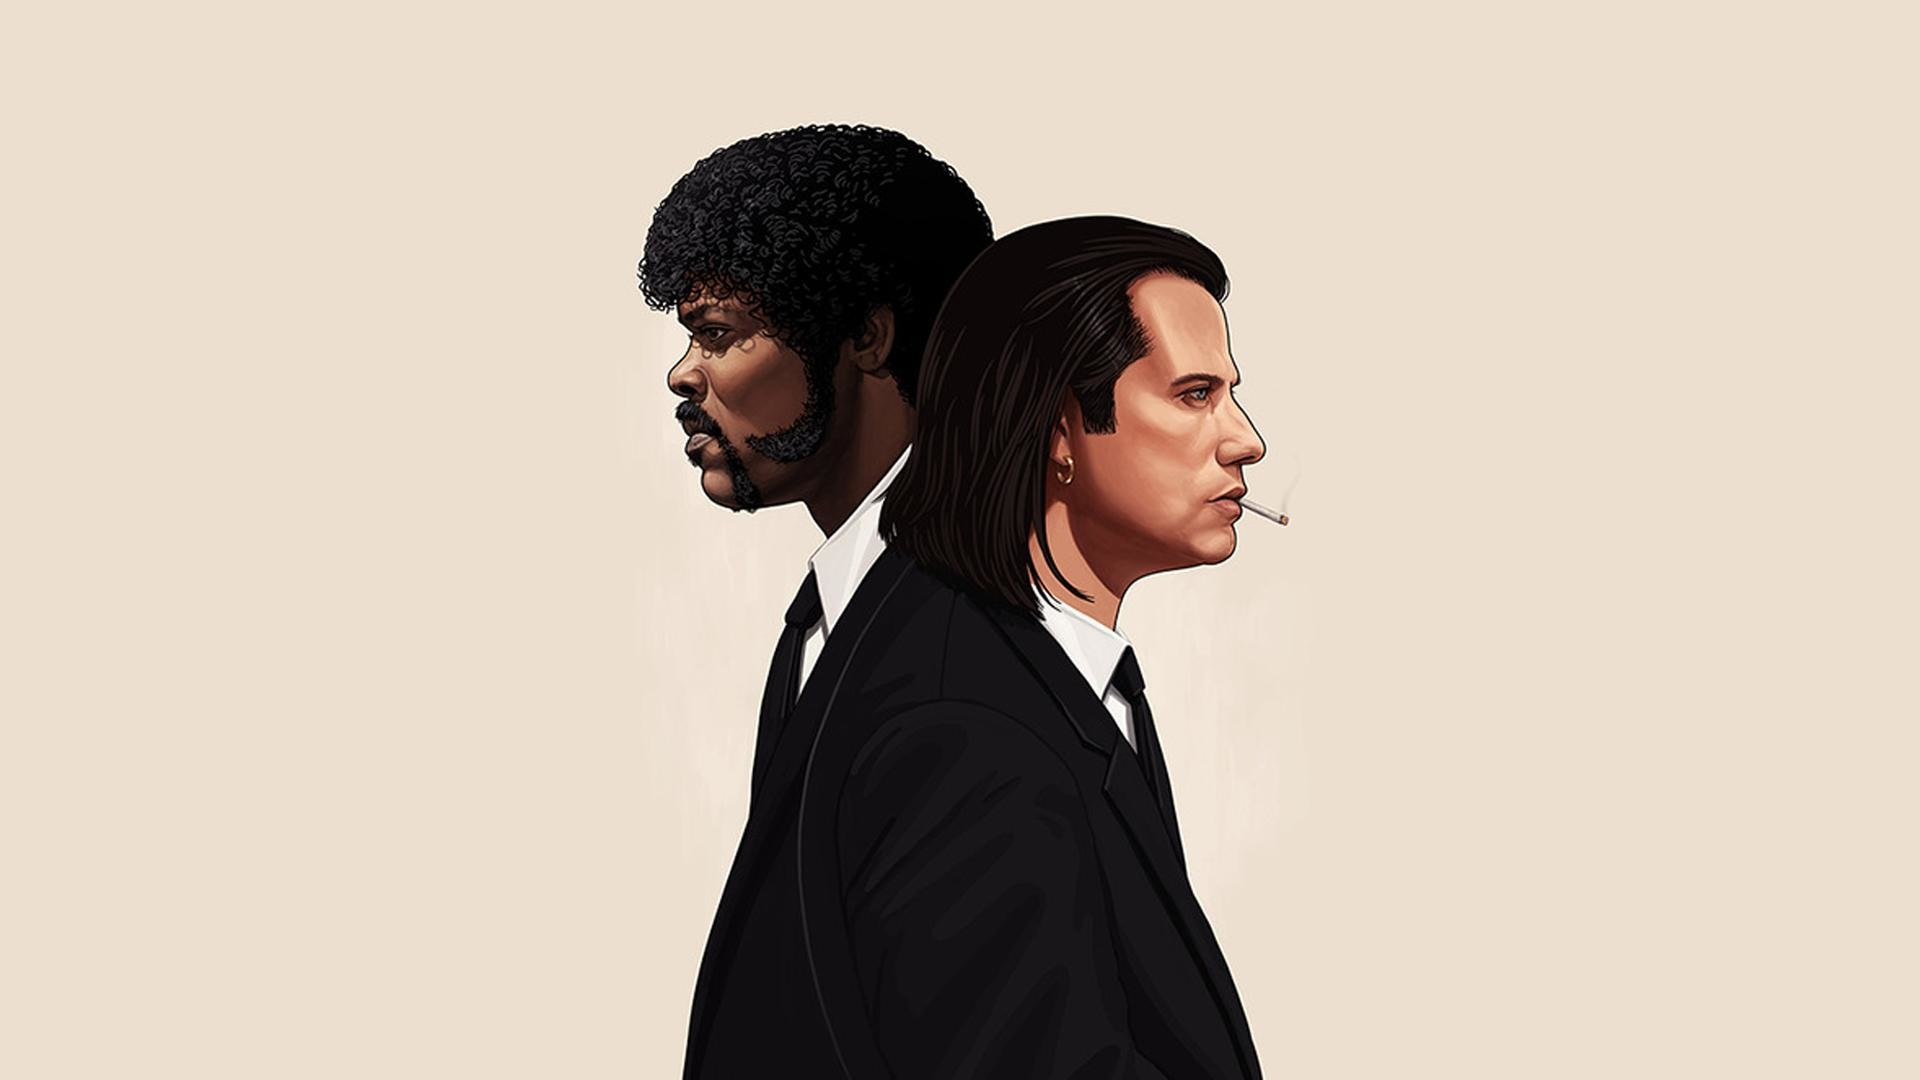 1920x1080 Movie - Pulp Fiction Wallpaper